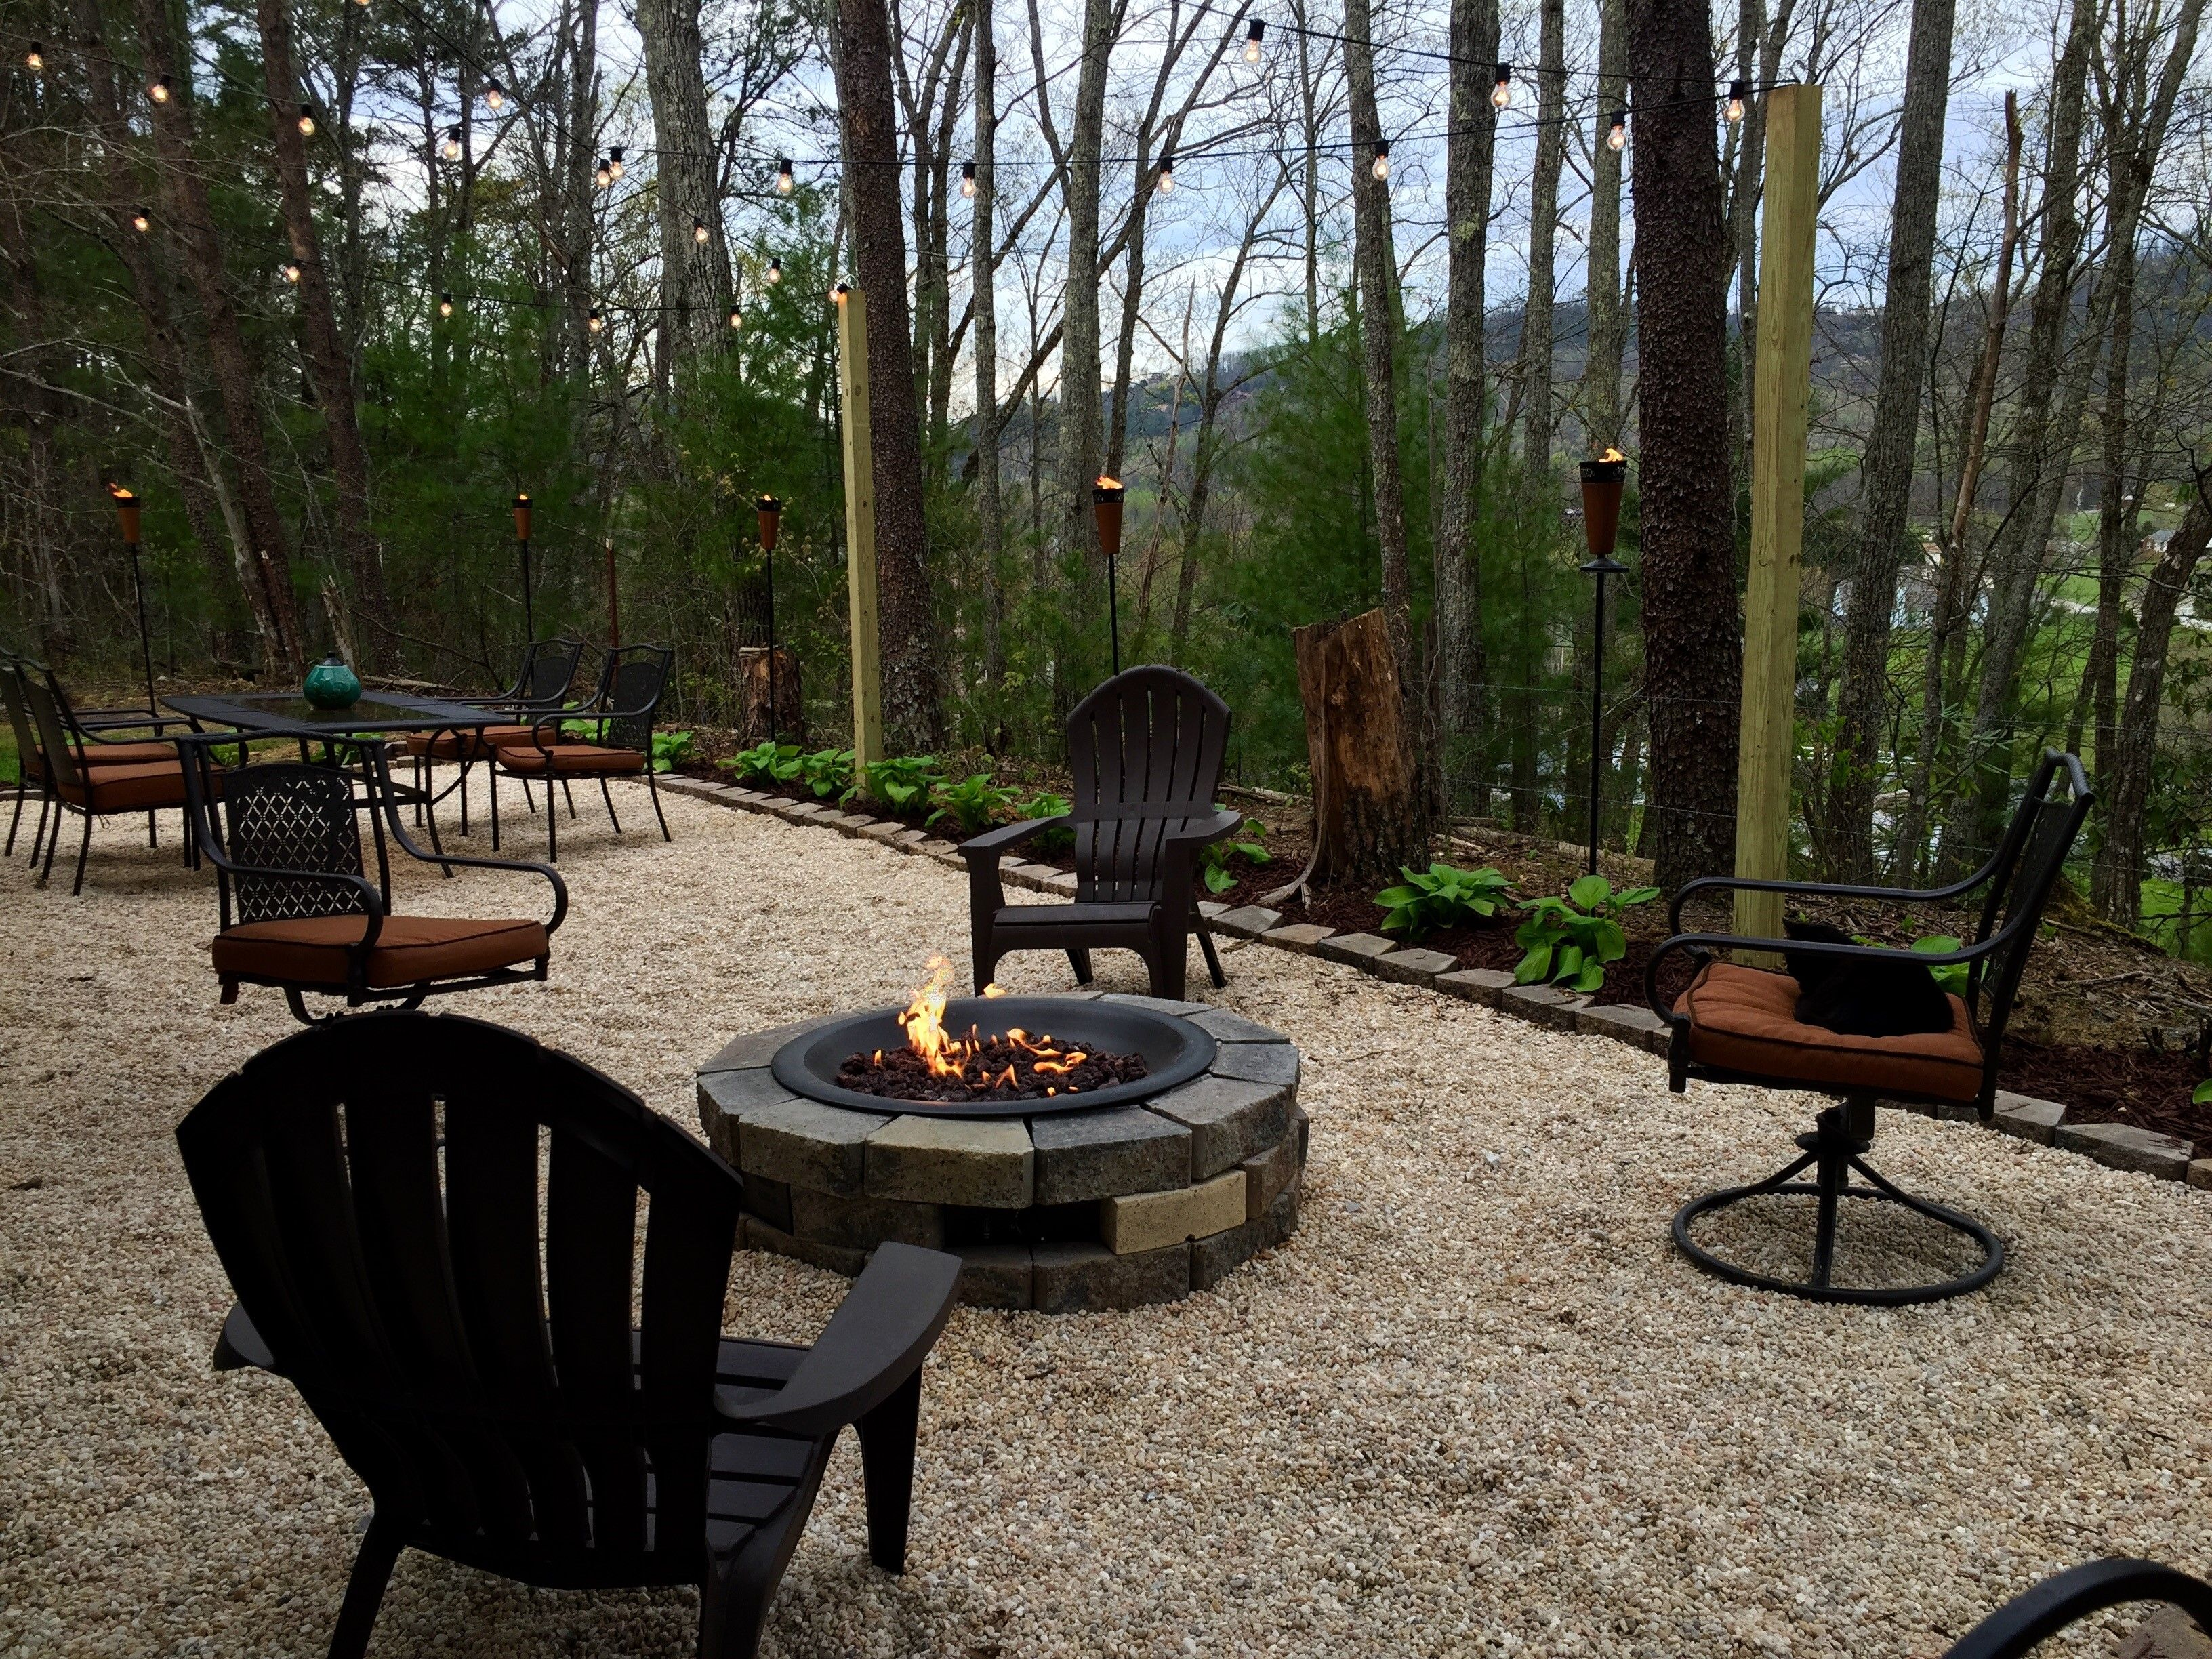 Kiesterrasse Our Patio Pea Gravel Gas Fire Pit Cafe Lights Fire